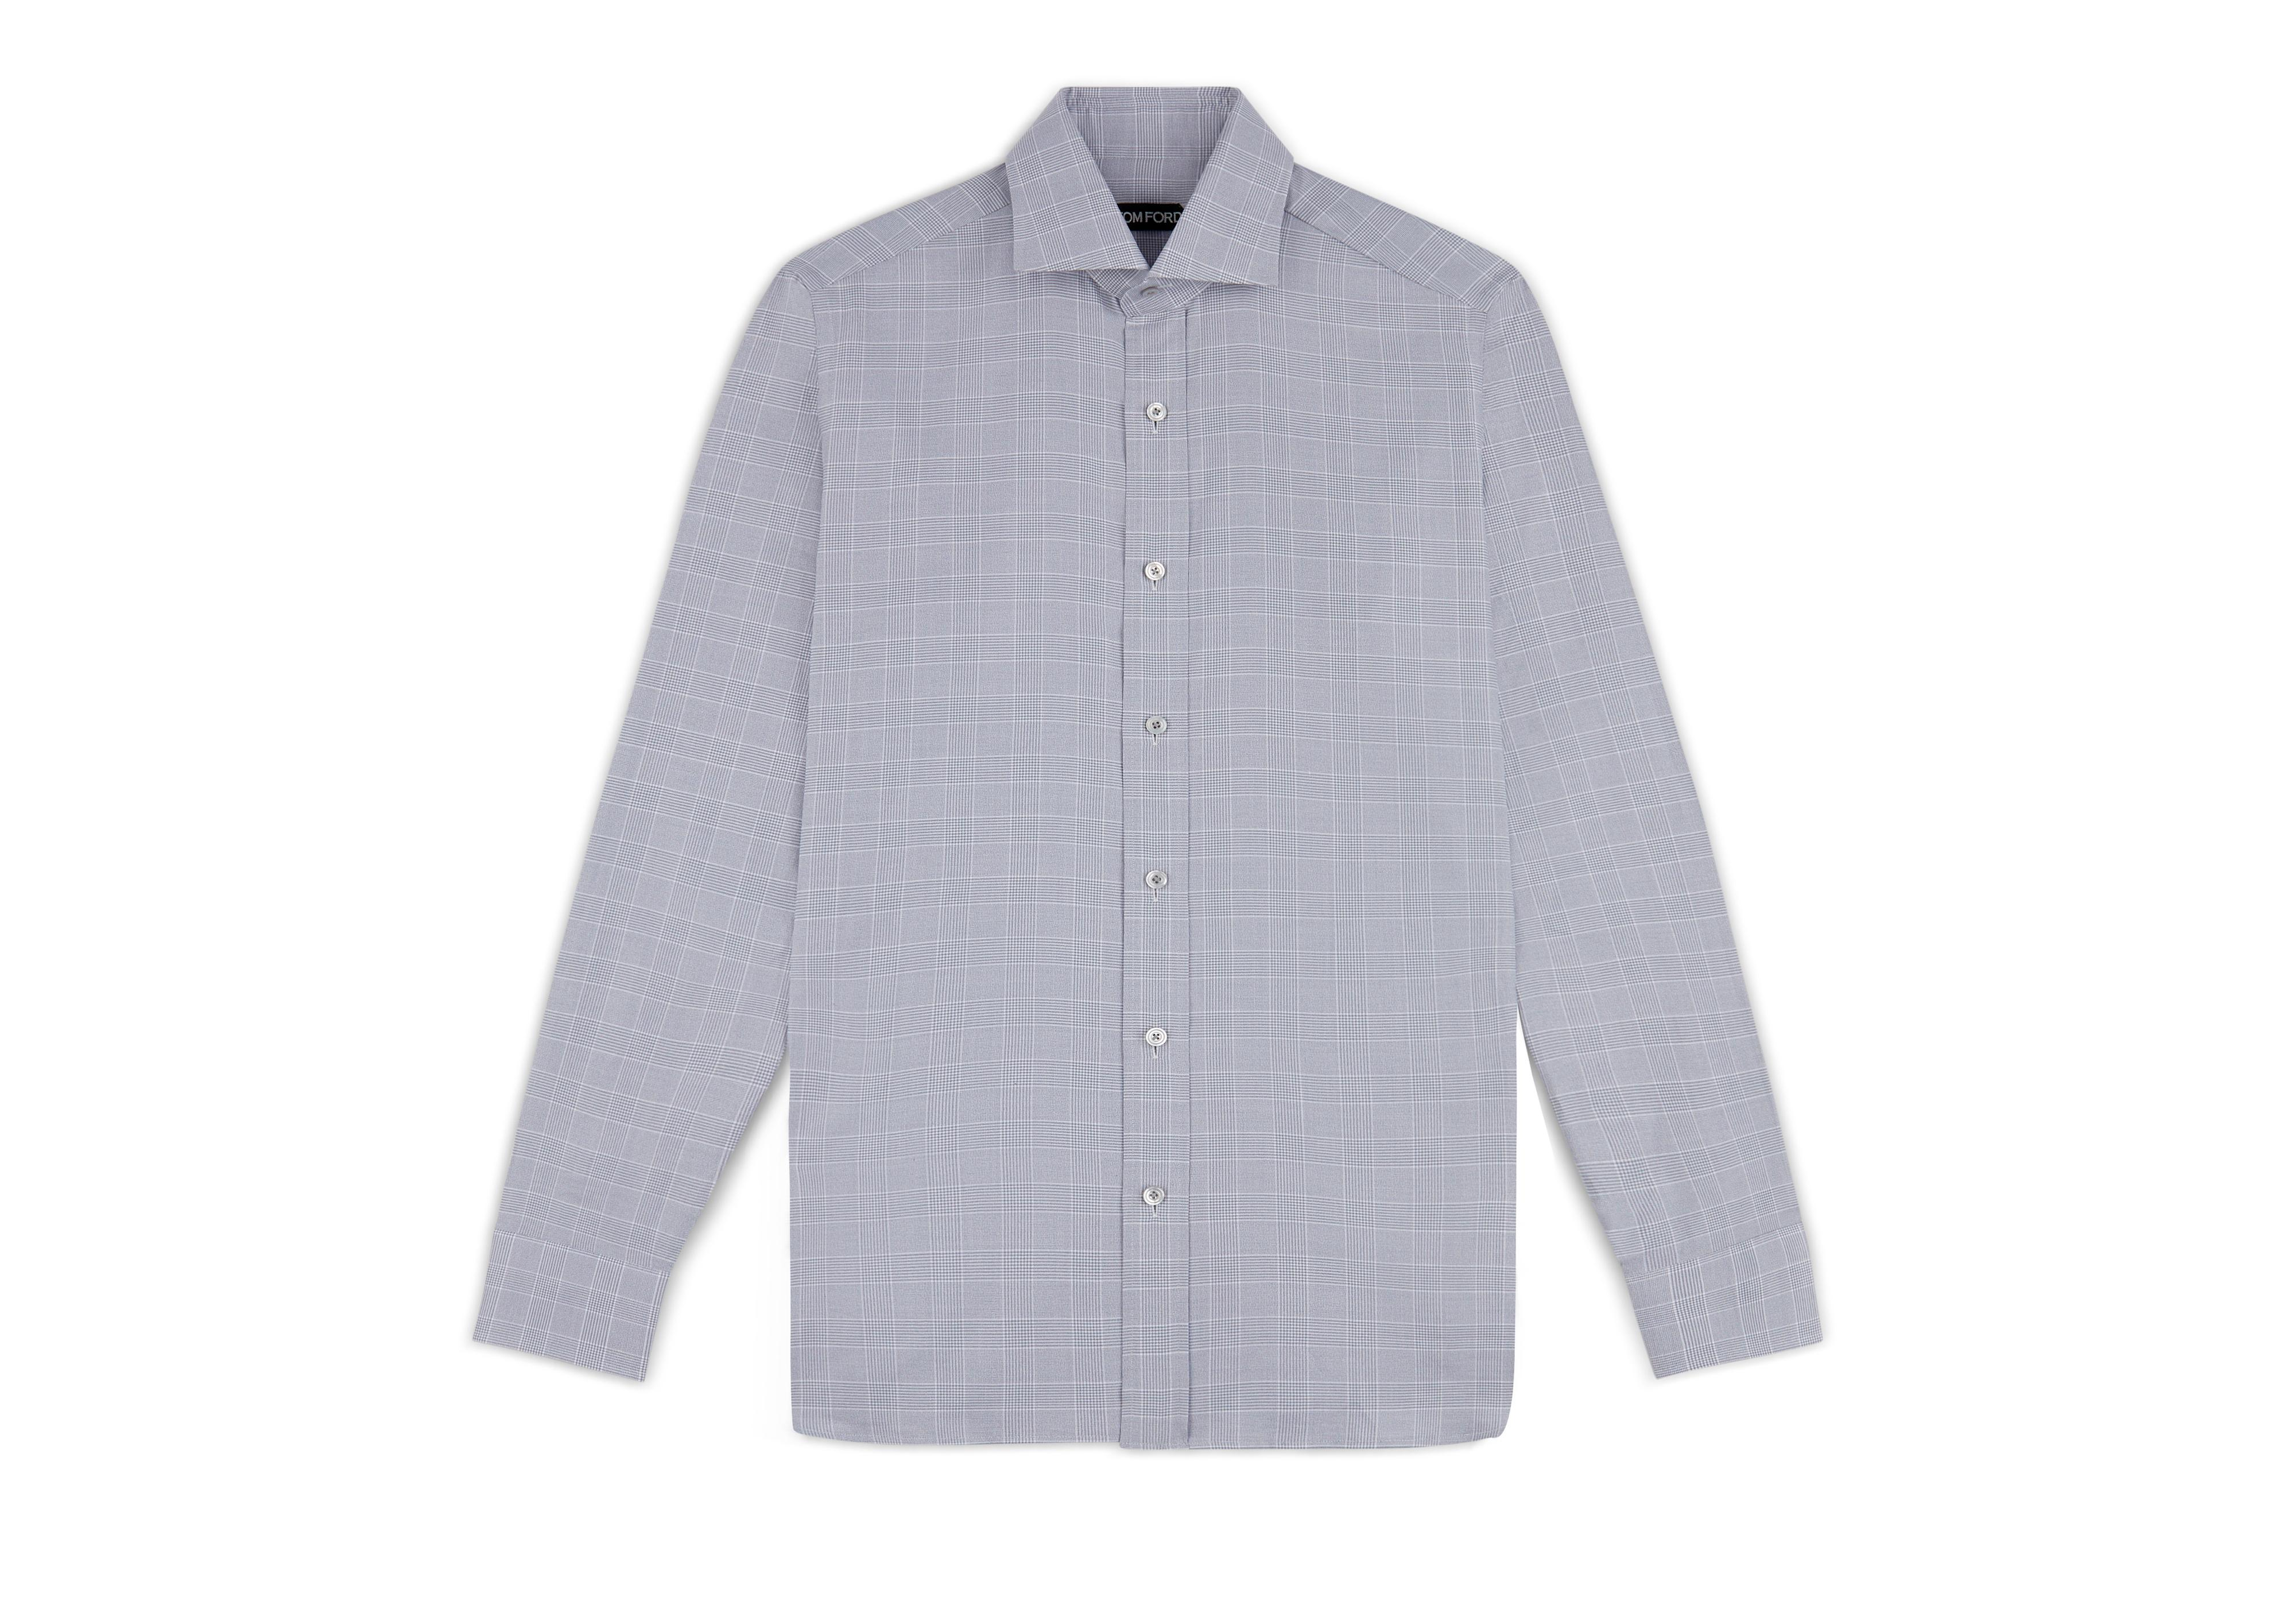 PRINCE OF WALES CLASSIC FIT SHIRT A thumbnail